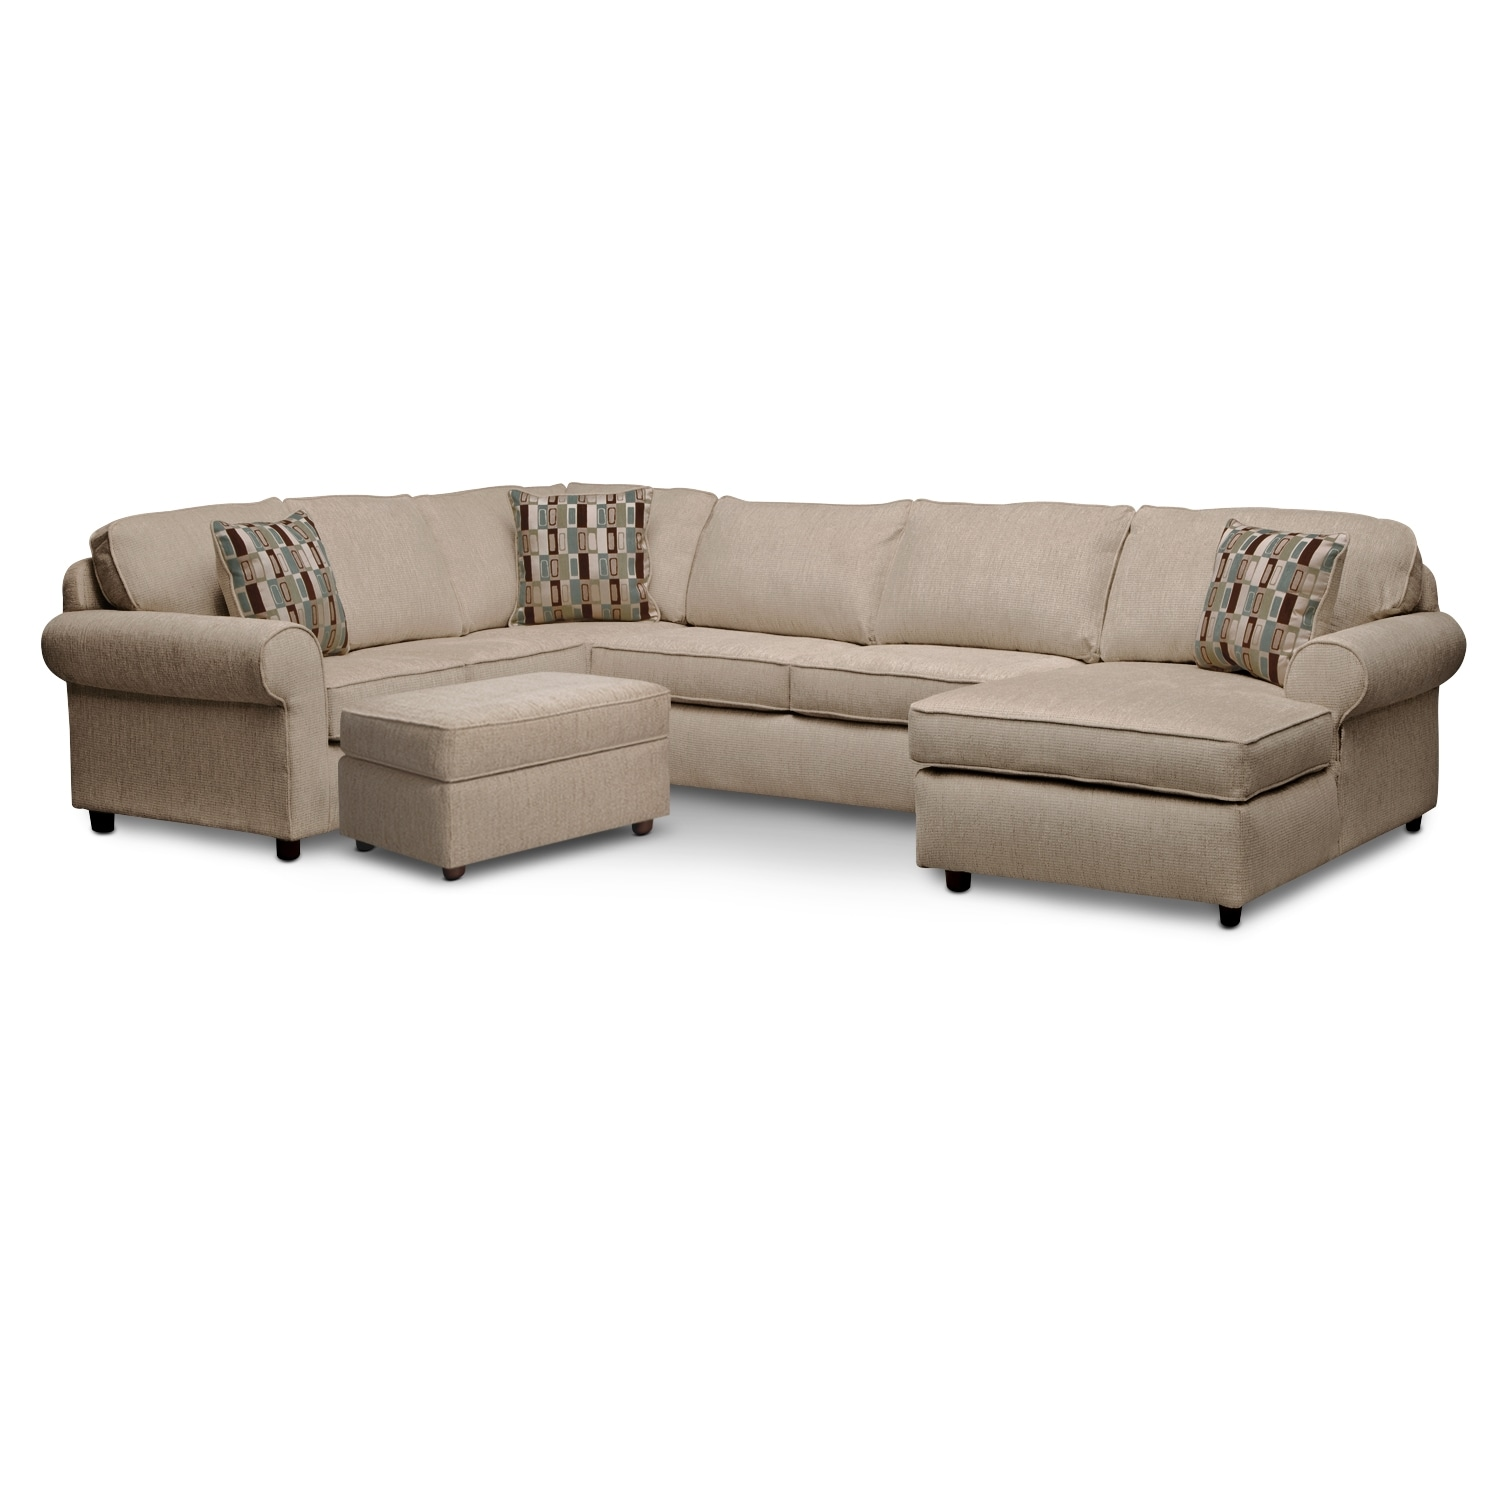 Living Room Furniture - Monarch II 3 Pc. Sectional and Ottoman